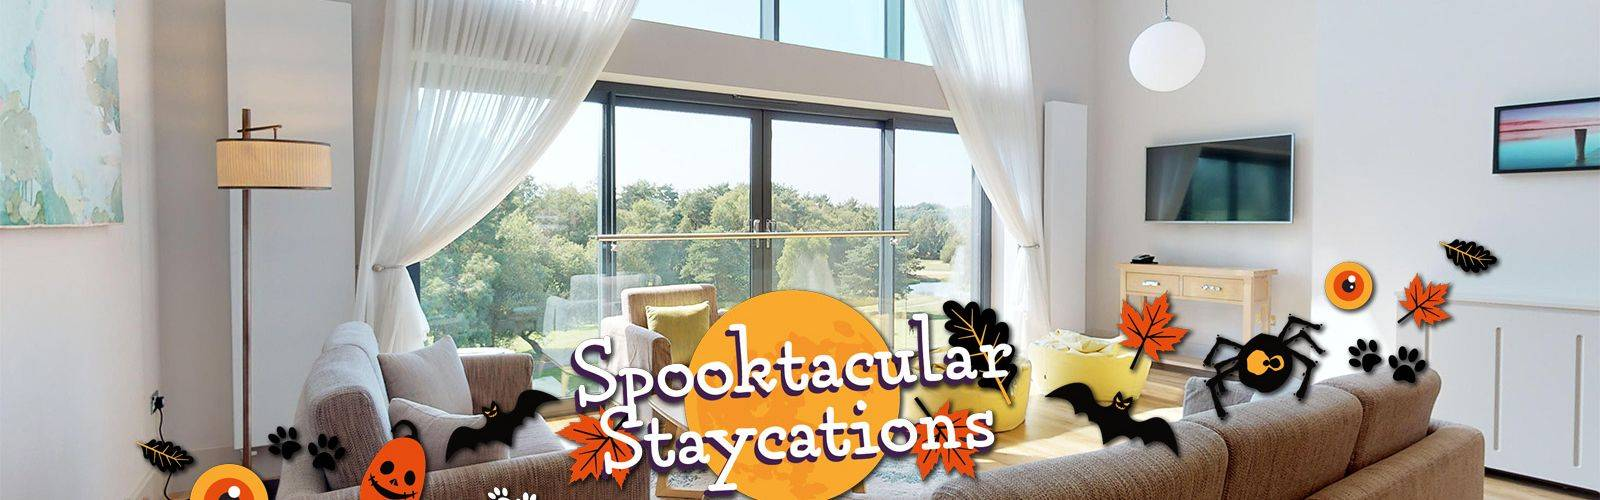 Spooktacular apartment.jpg